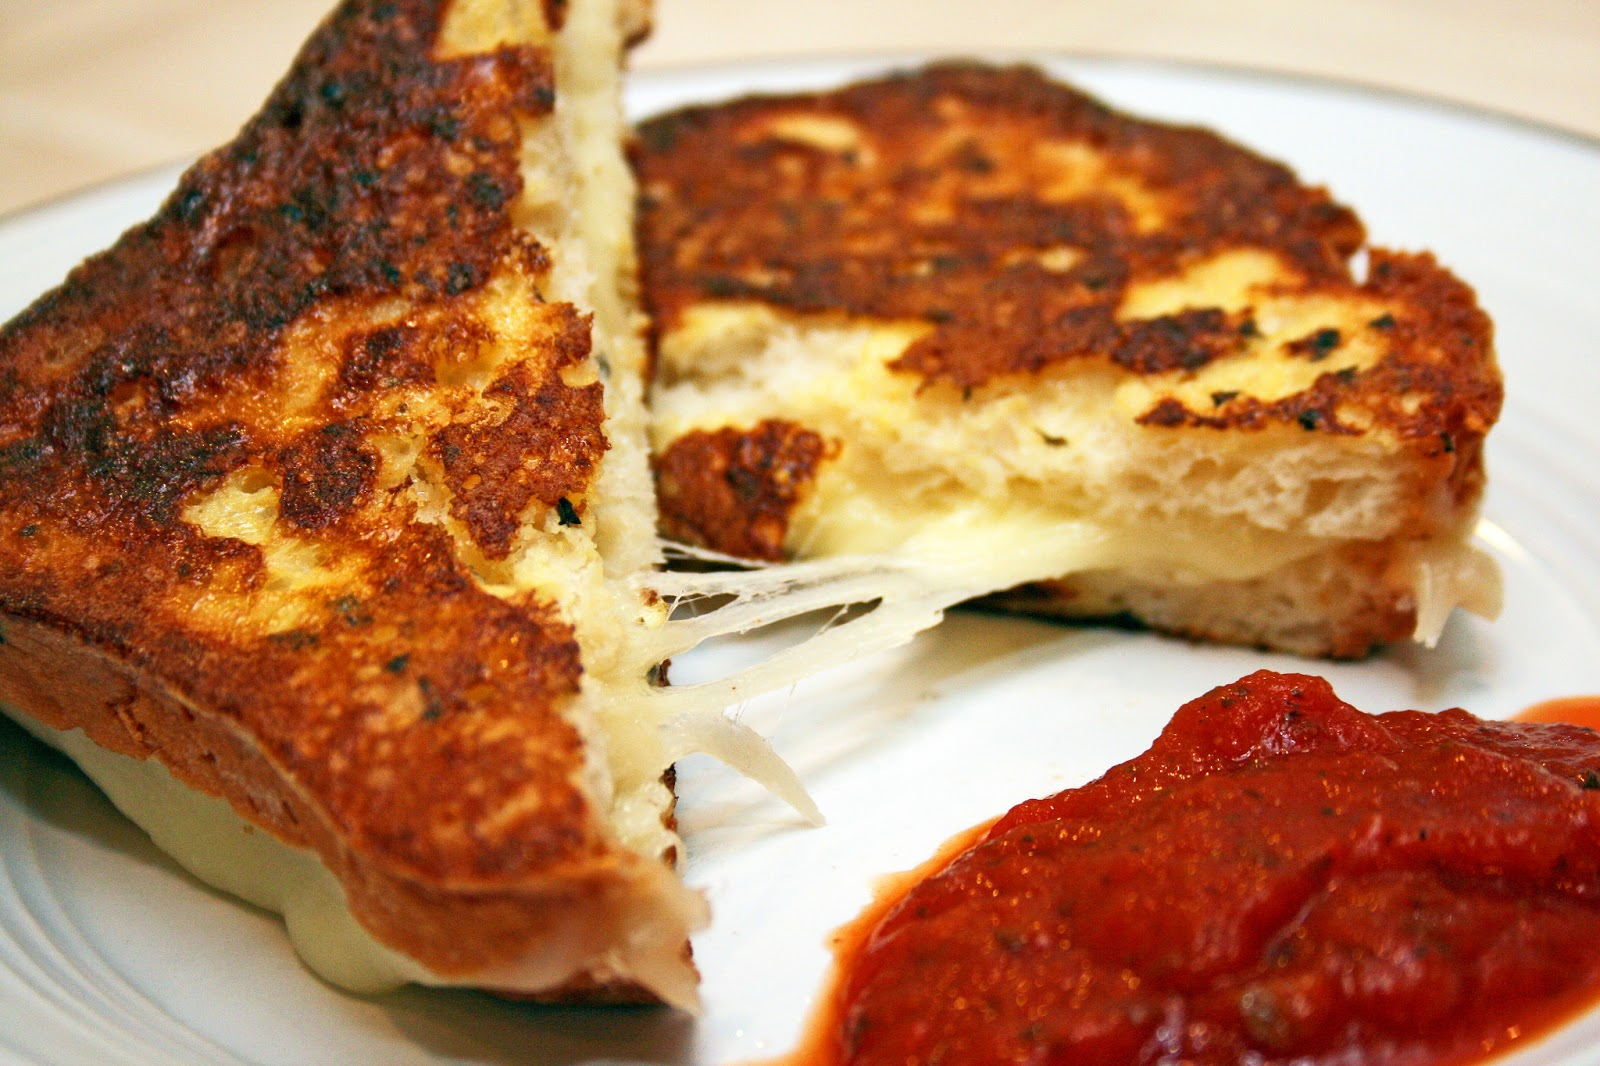 Lazy Gluten Free: Grilled Mozzarella Cheese Sandwiches